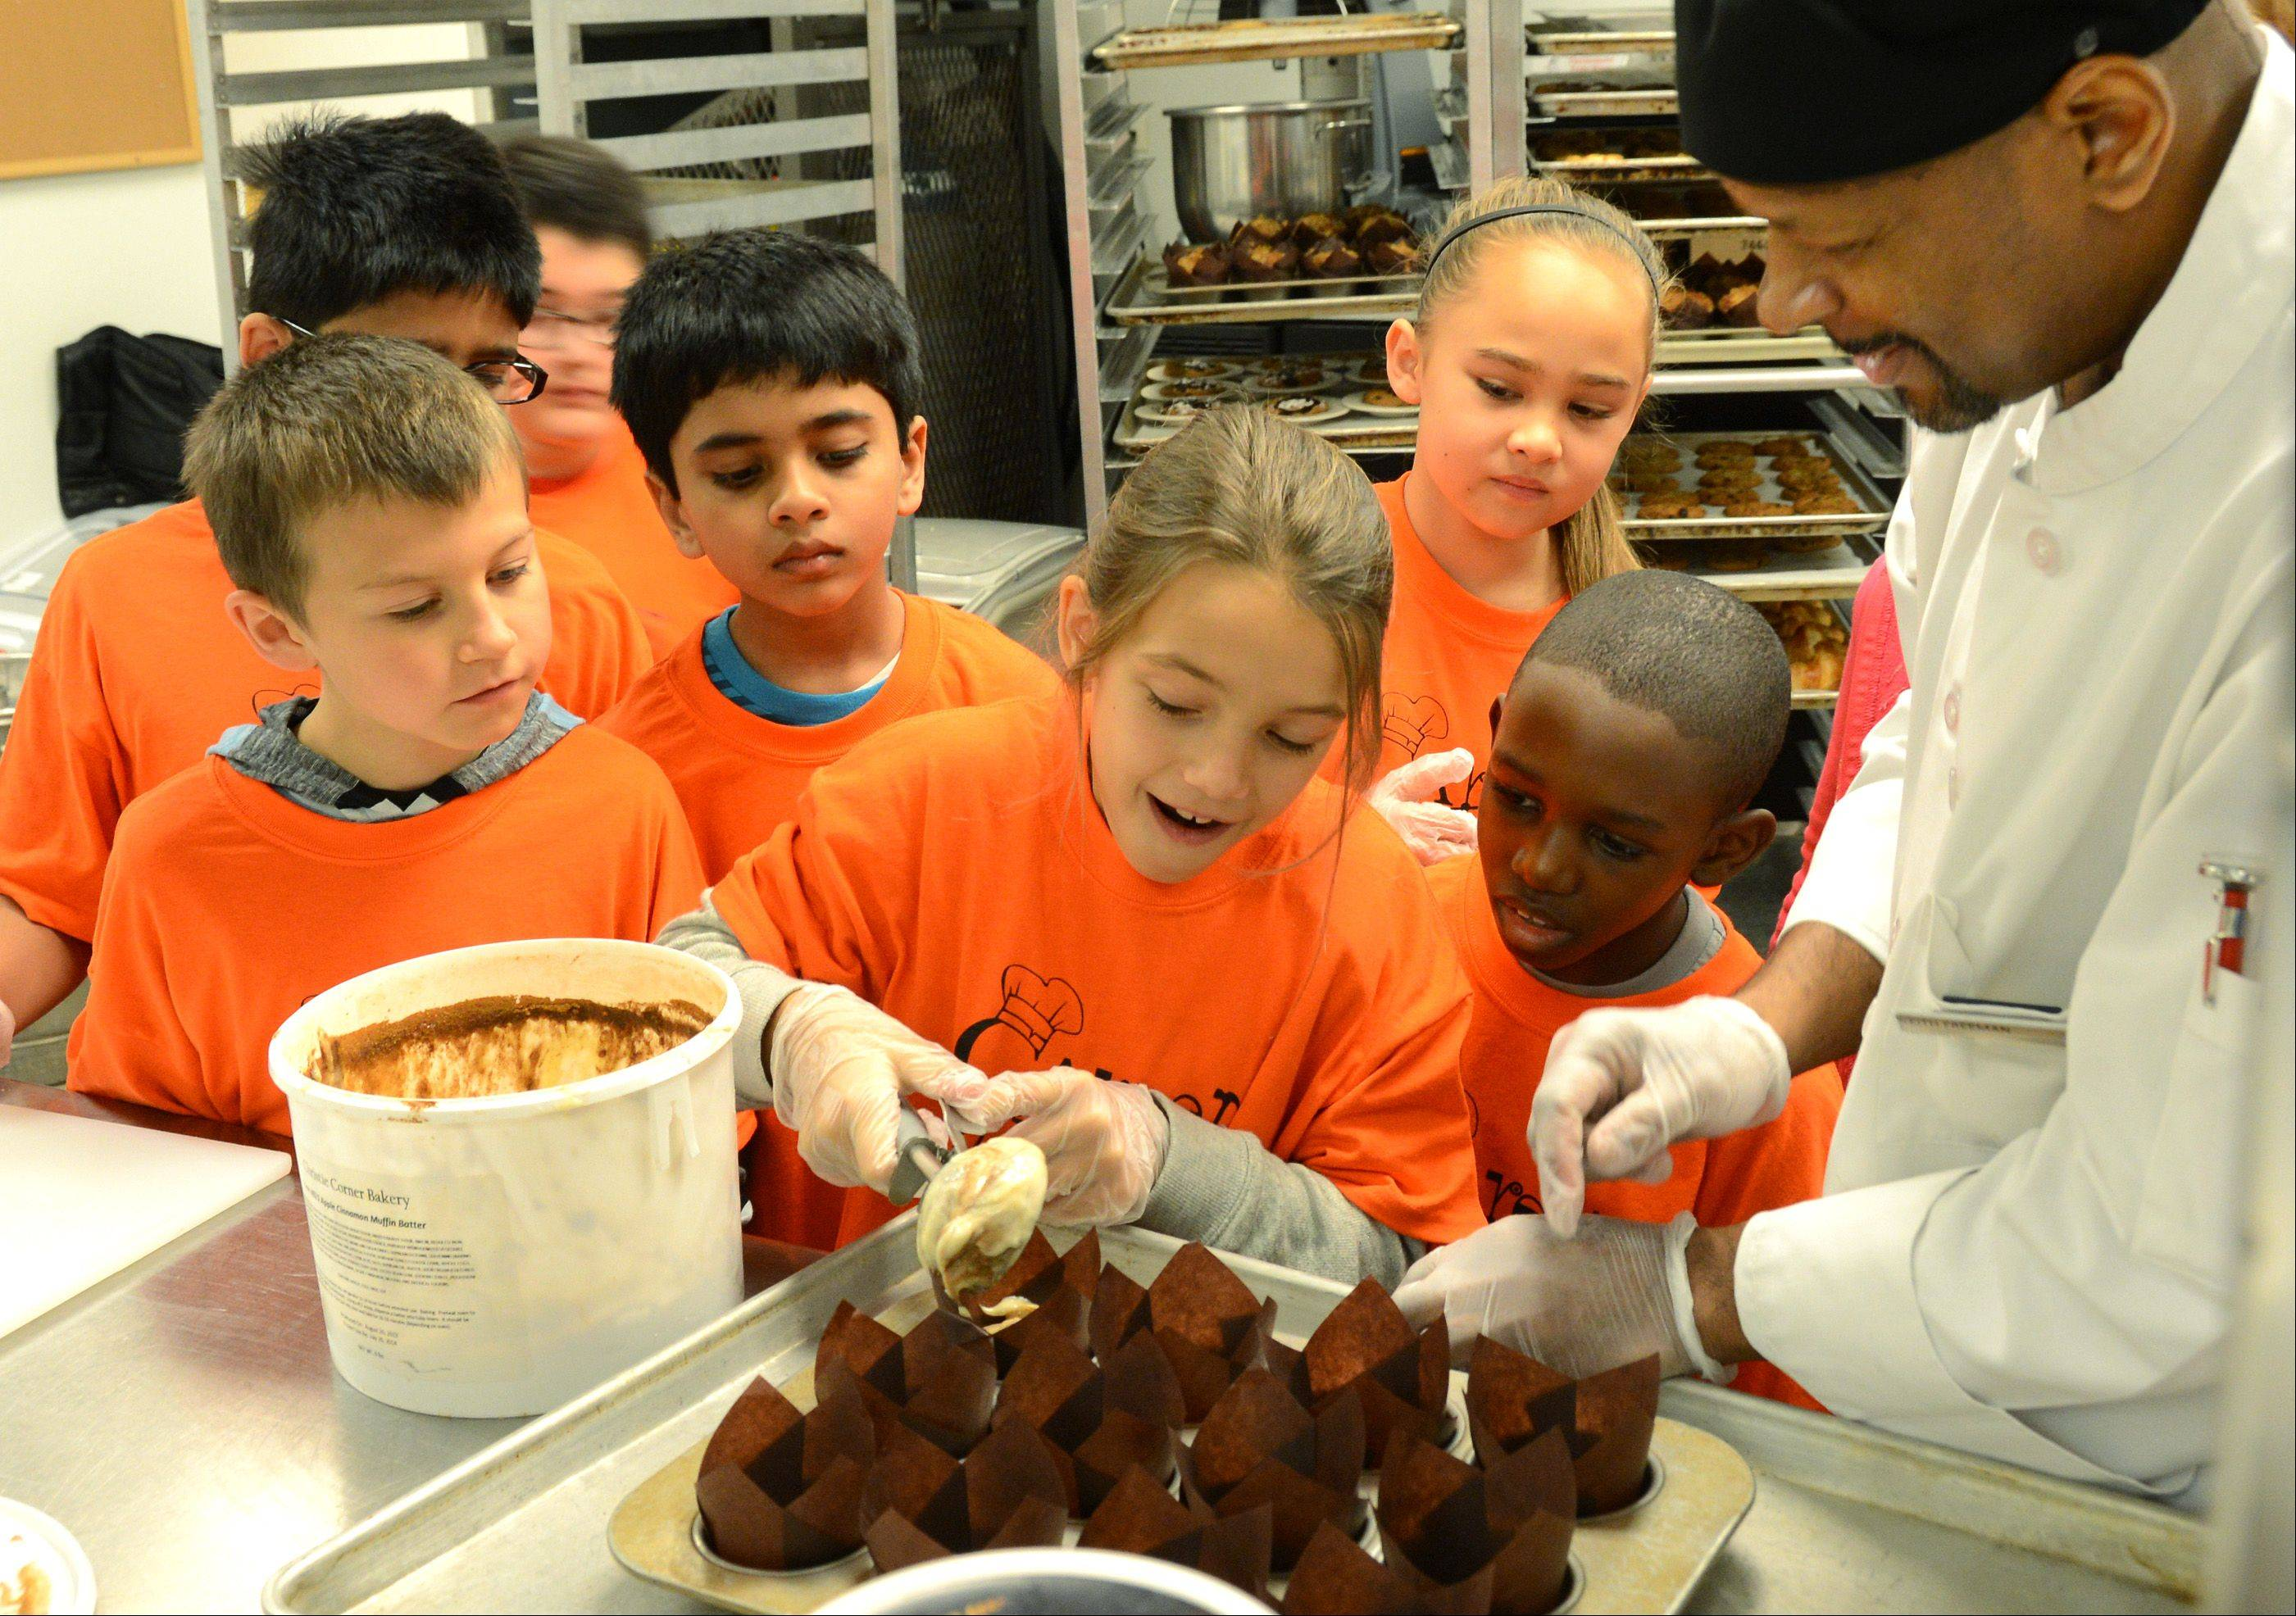 Surrounded by her classmates, Amelia Gesicki tries her hand at making apple cinnamon muffins under the watchful eye of Executive Chef Keith Freeman, right. Fourth graders from Stella May Swartz school in Oakbrook Terrace got an inside look Monday at the operation of the Hilton Suites hotel in Oakbrook Terrace.